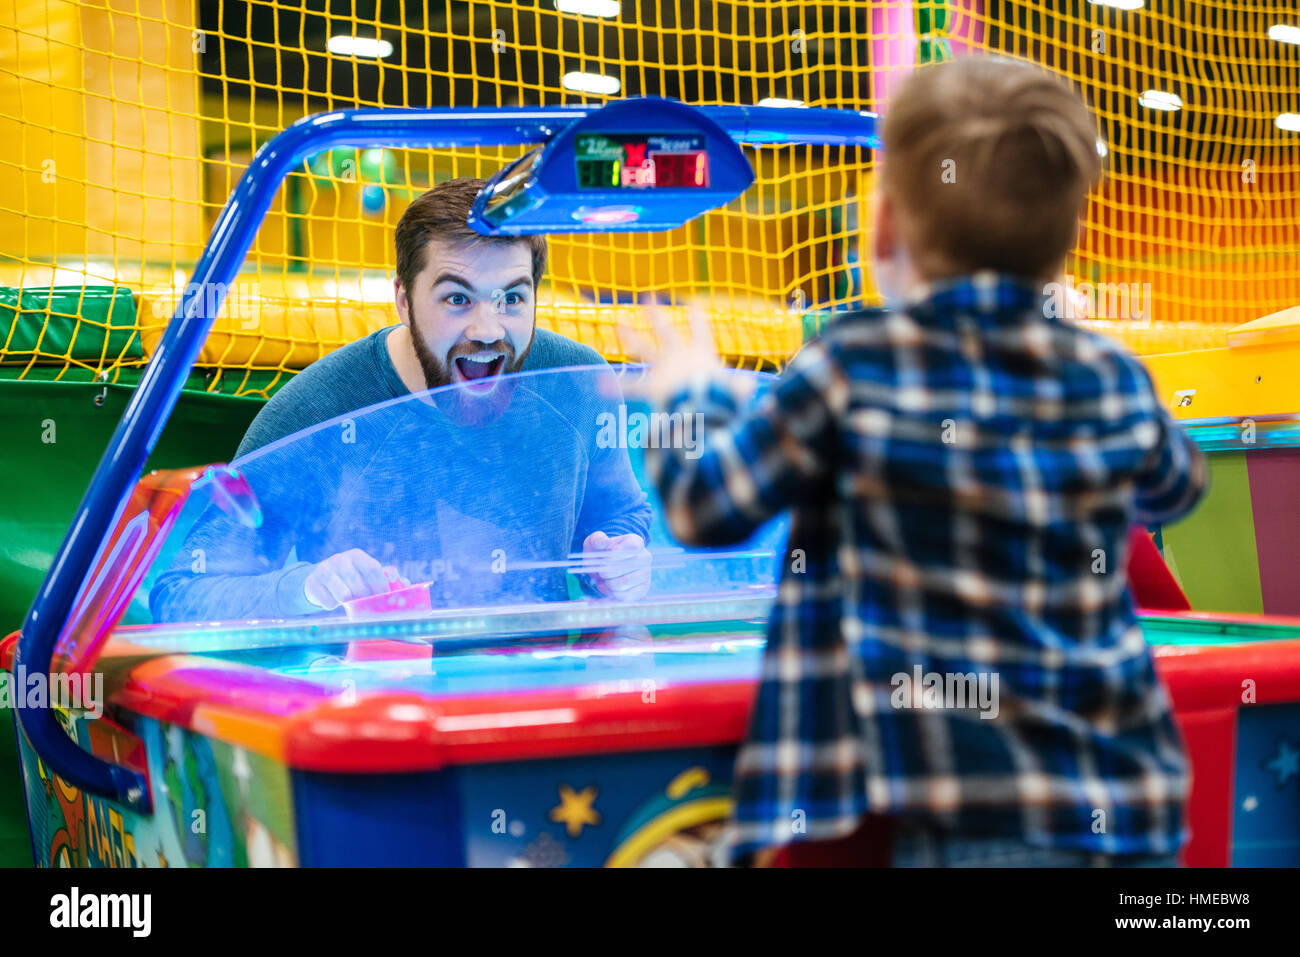 Joyful bearded father and son playing air hockey game at amusement park Stock Photo